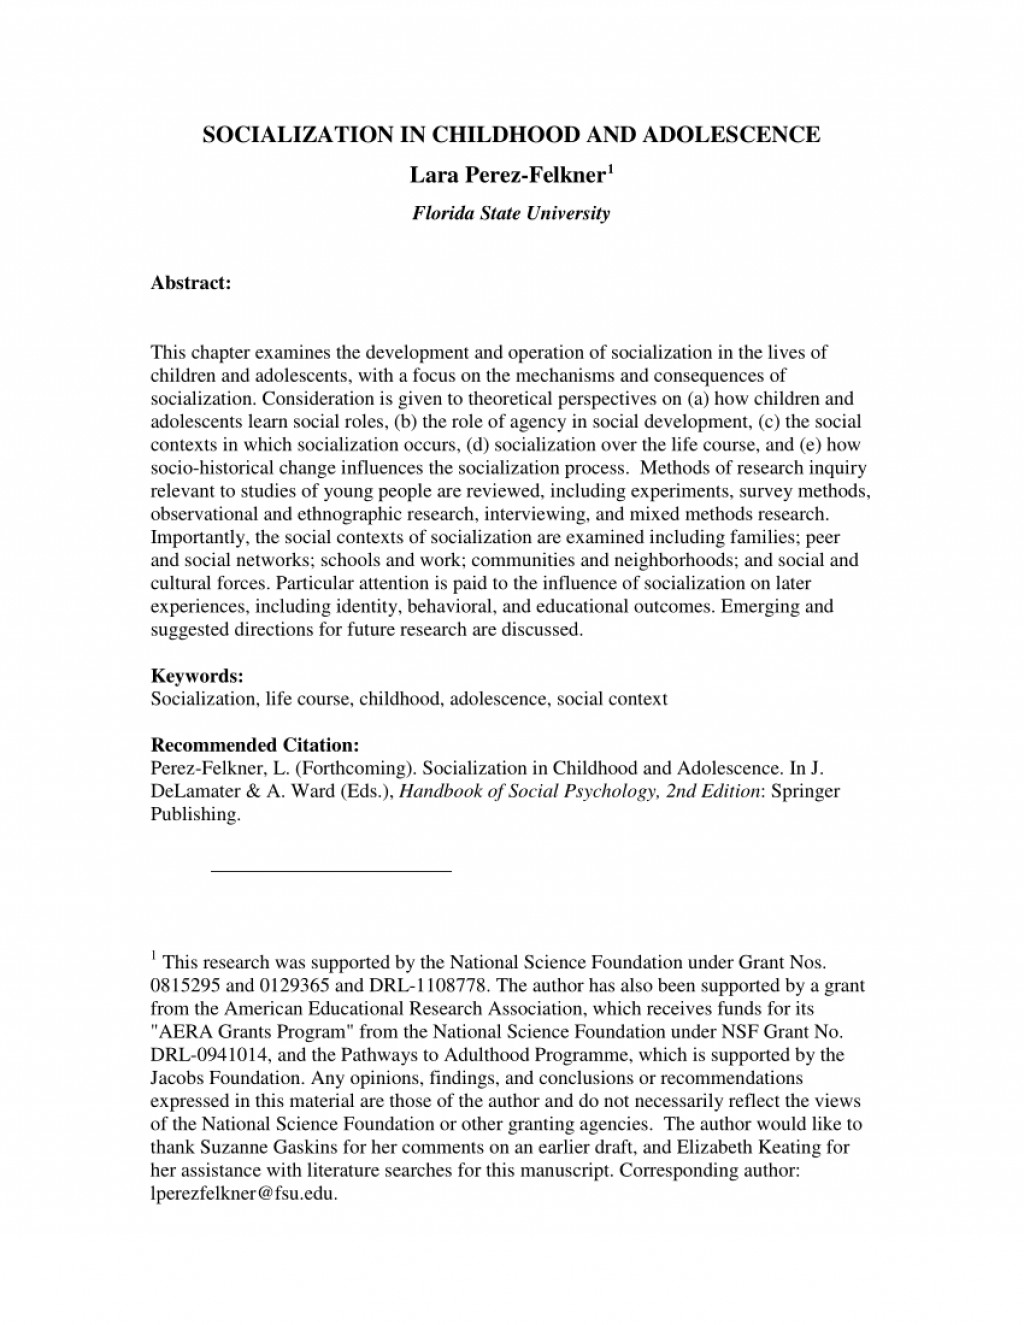 002 Research Paper Largepreview Abstract About Child And Adolescent Wondrous Development Sample Pdf Large